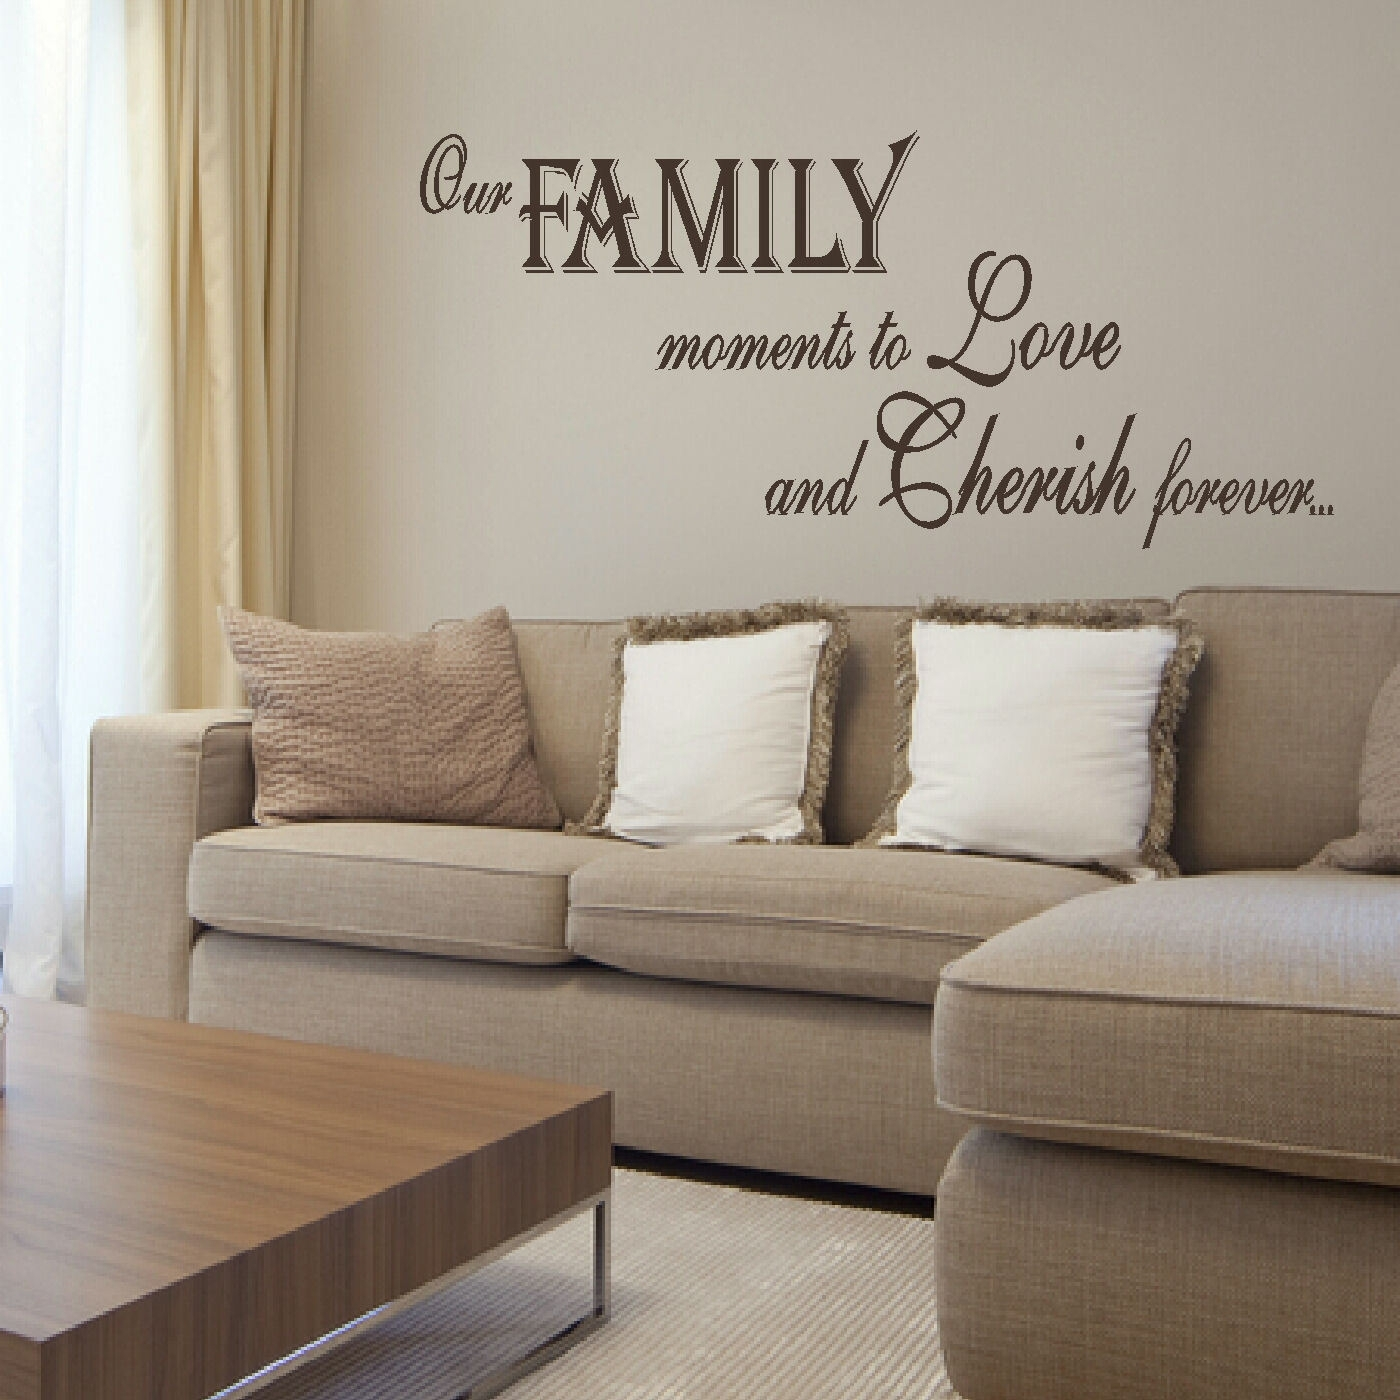 Large Bedroom Quote Family Love Giant Wall Art Sticker Transfer Throughout Most Recent Giant Wall Art (View 12 of 20)